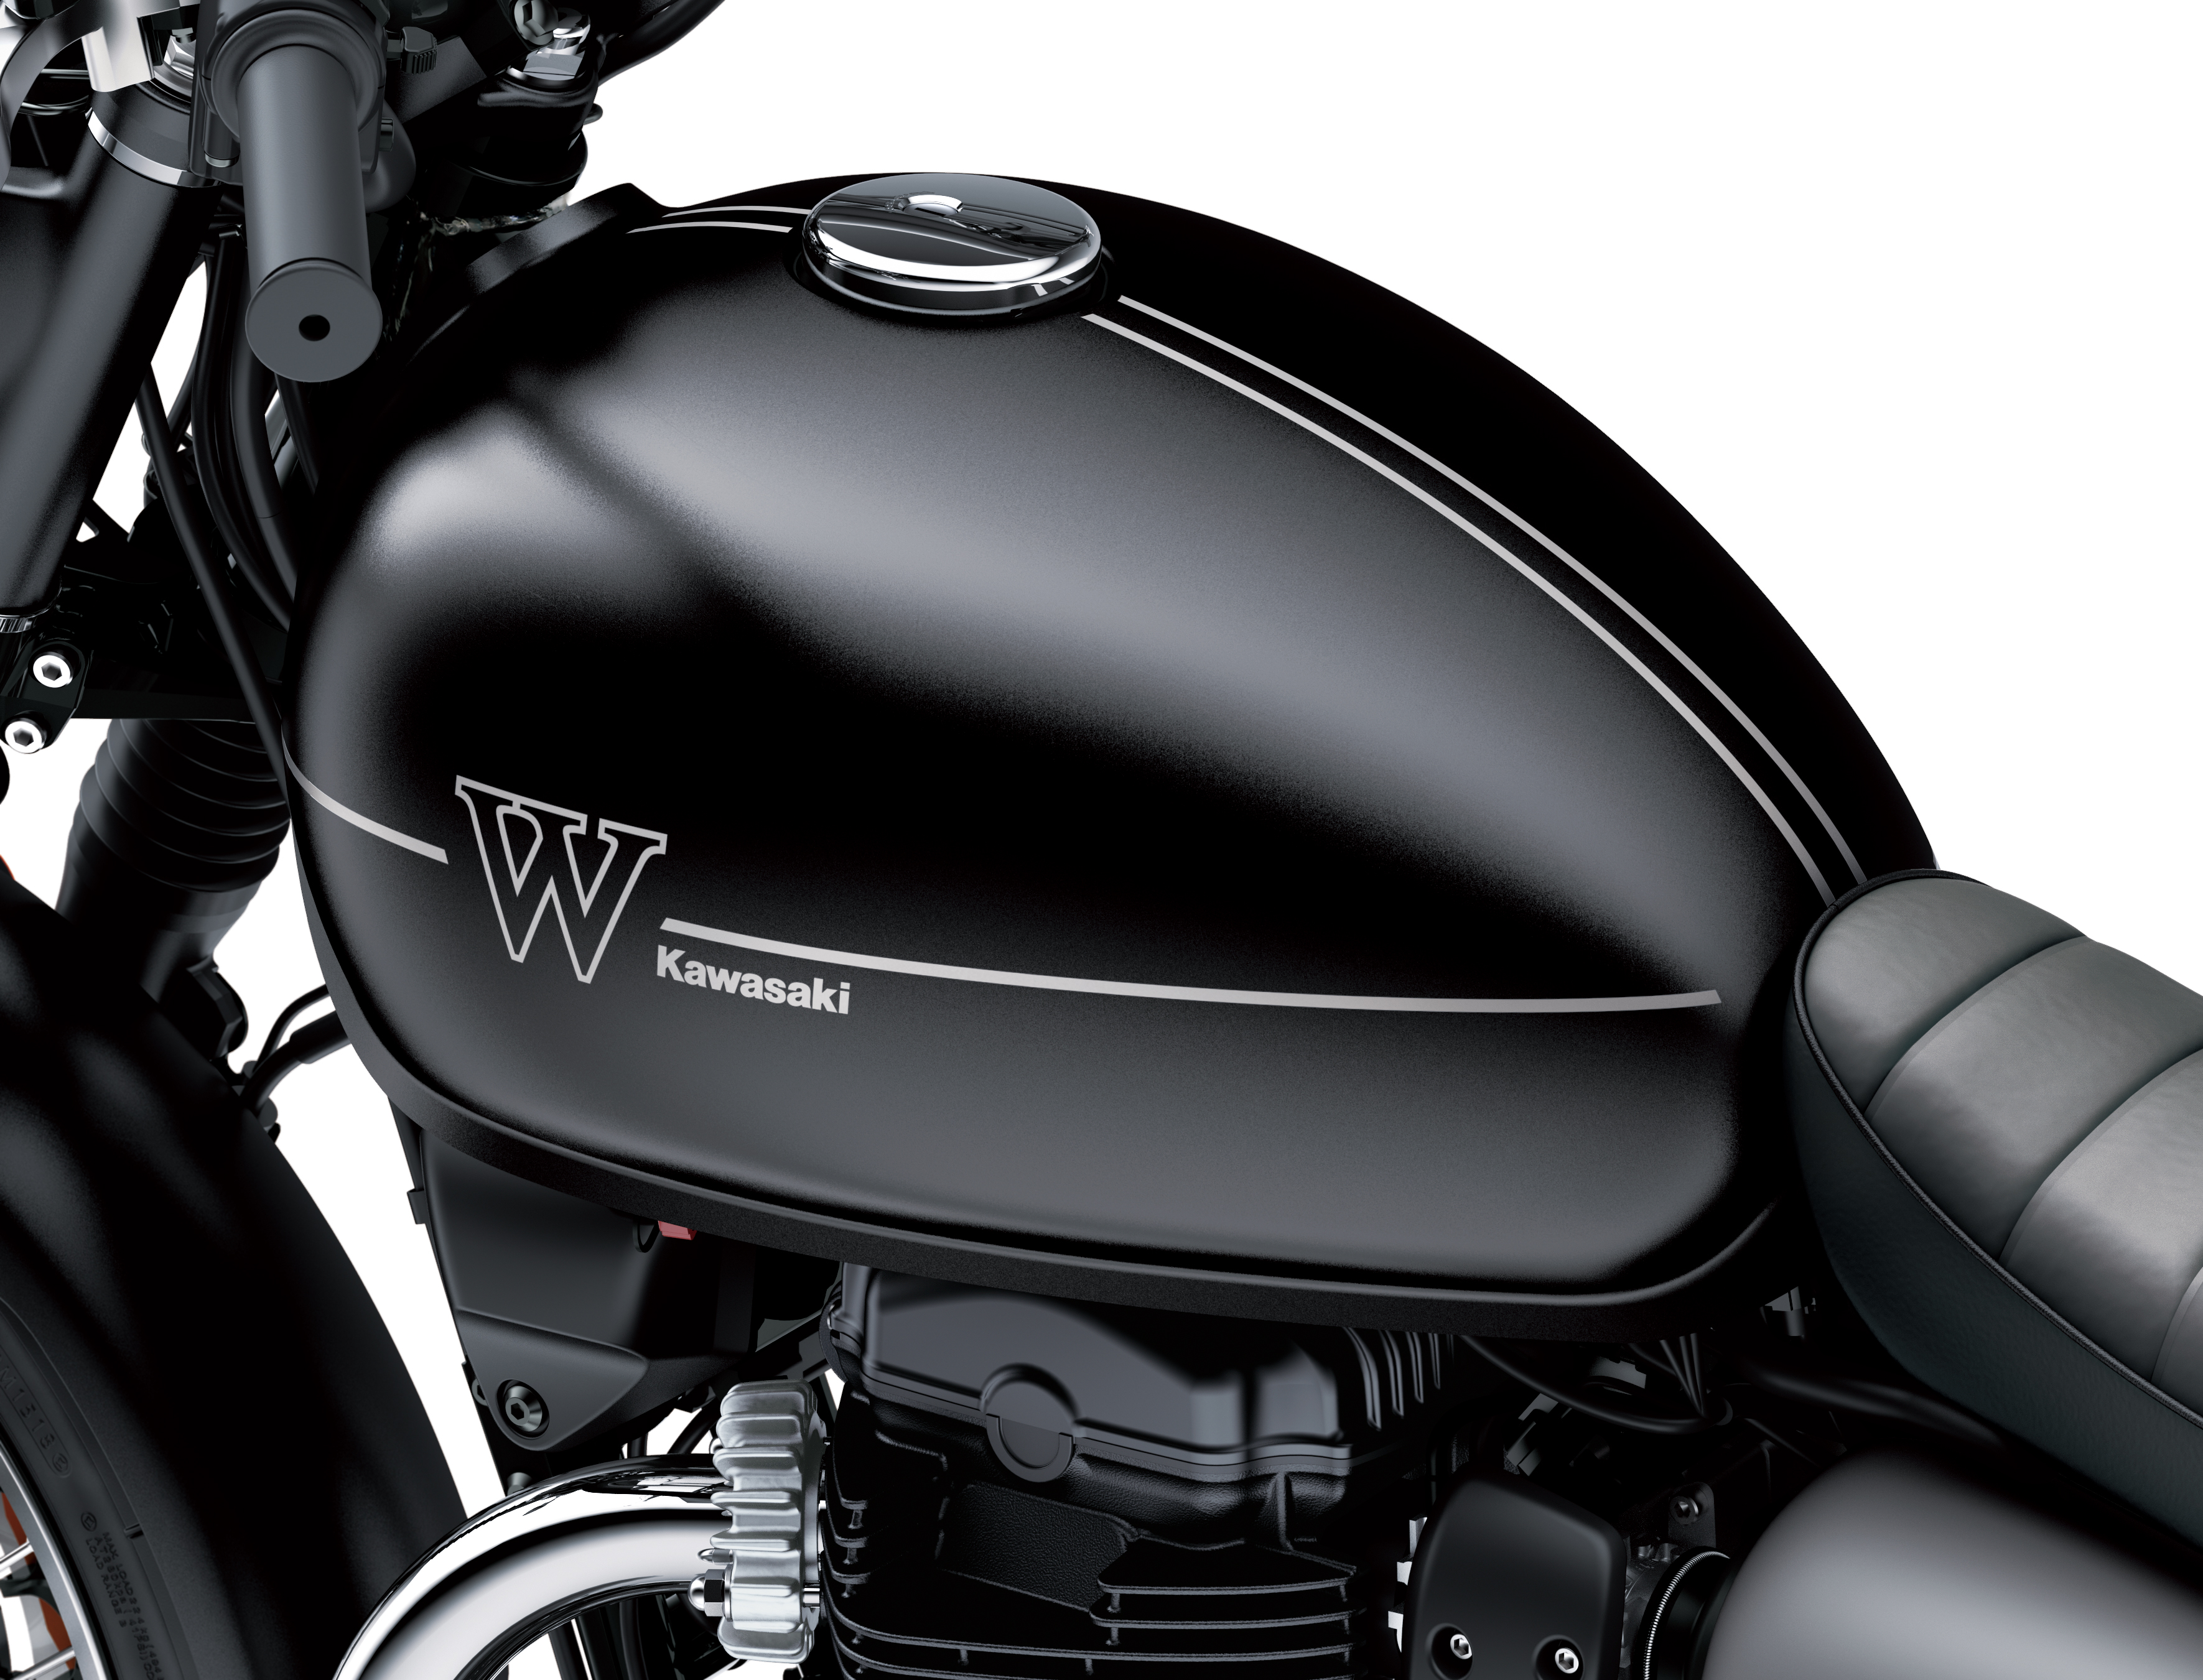 2019 Kawasaki W800 Street Gets Carb Certification May Join W800